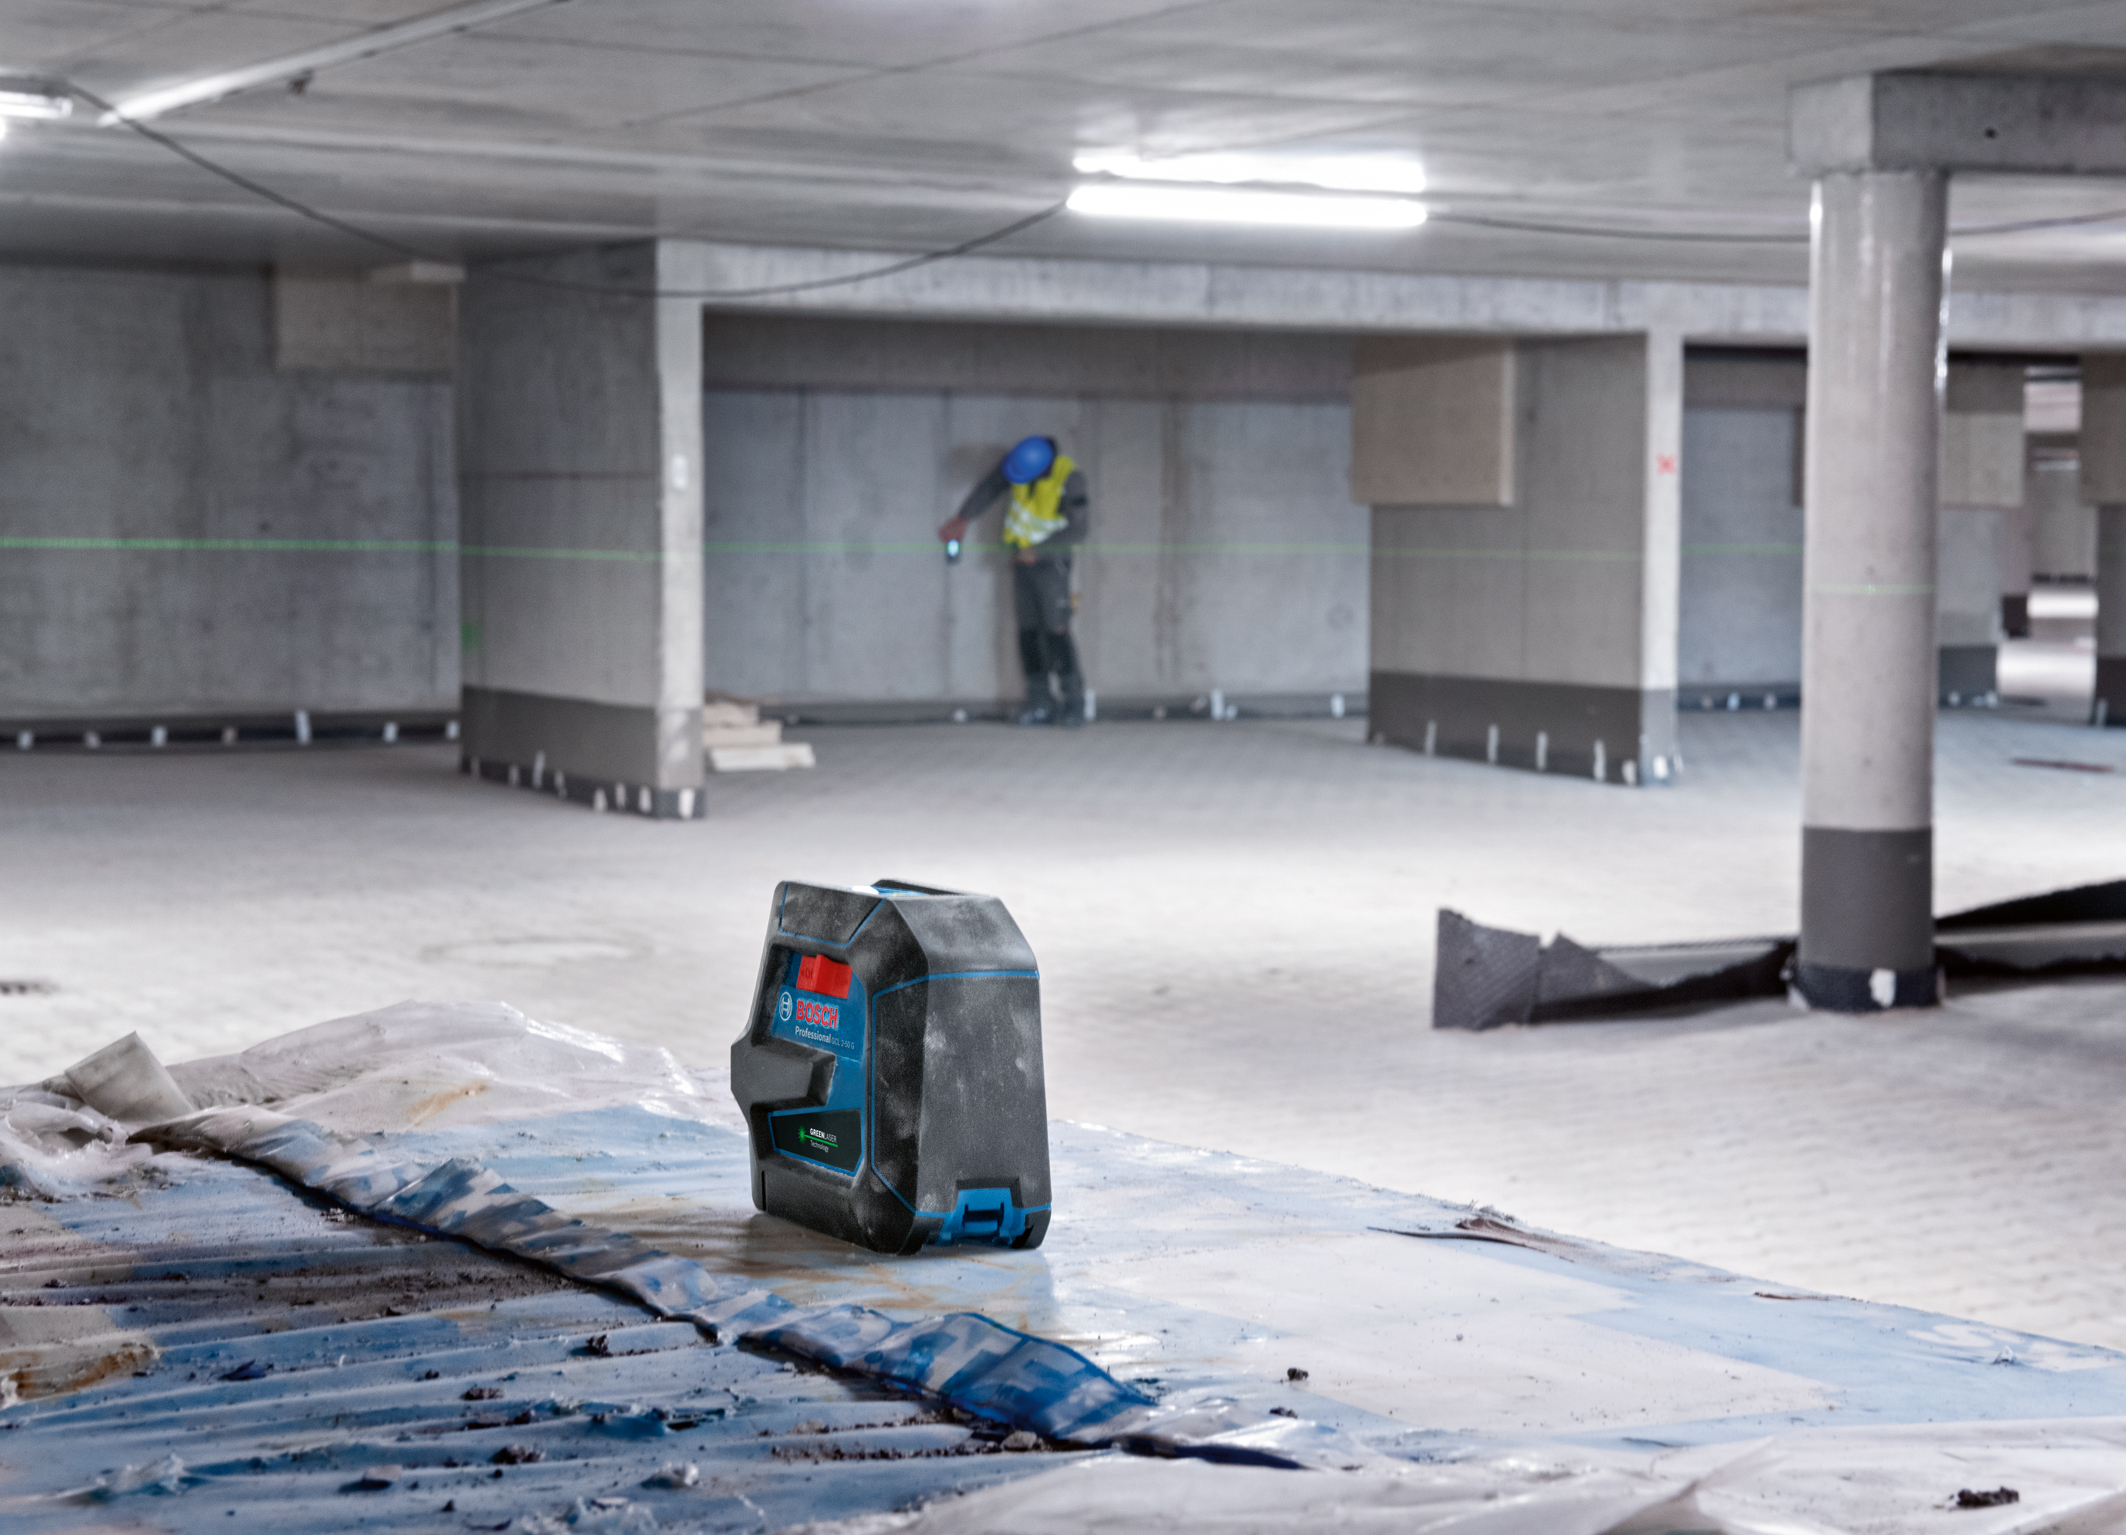 For versatile tasks in interior fitting: Combi laser GCL 2-50 G Professional from Bosch for professionals